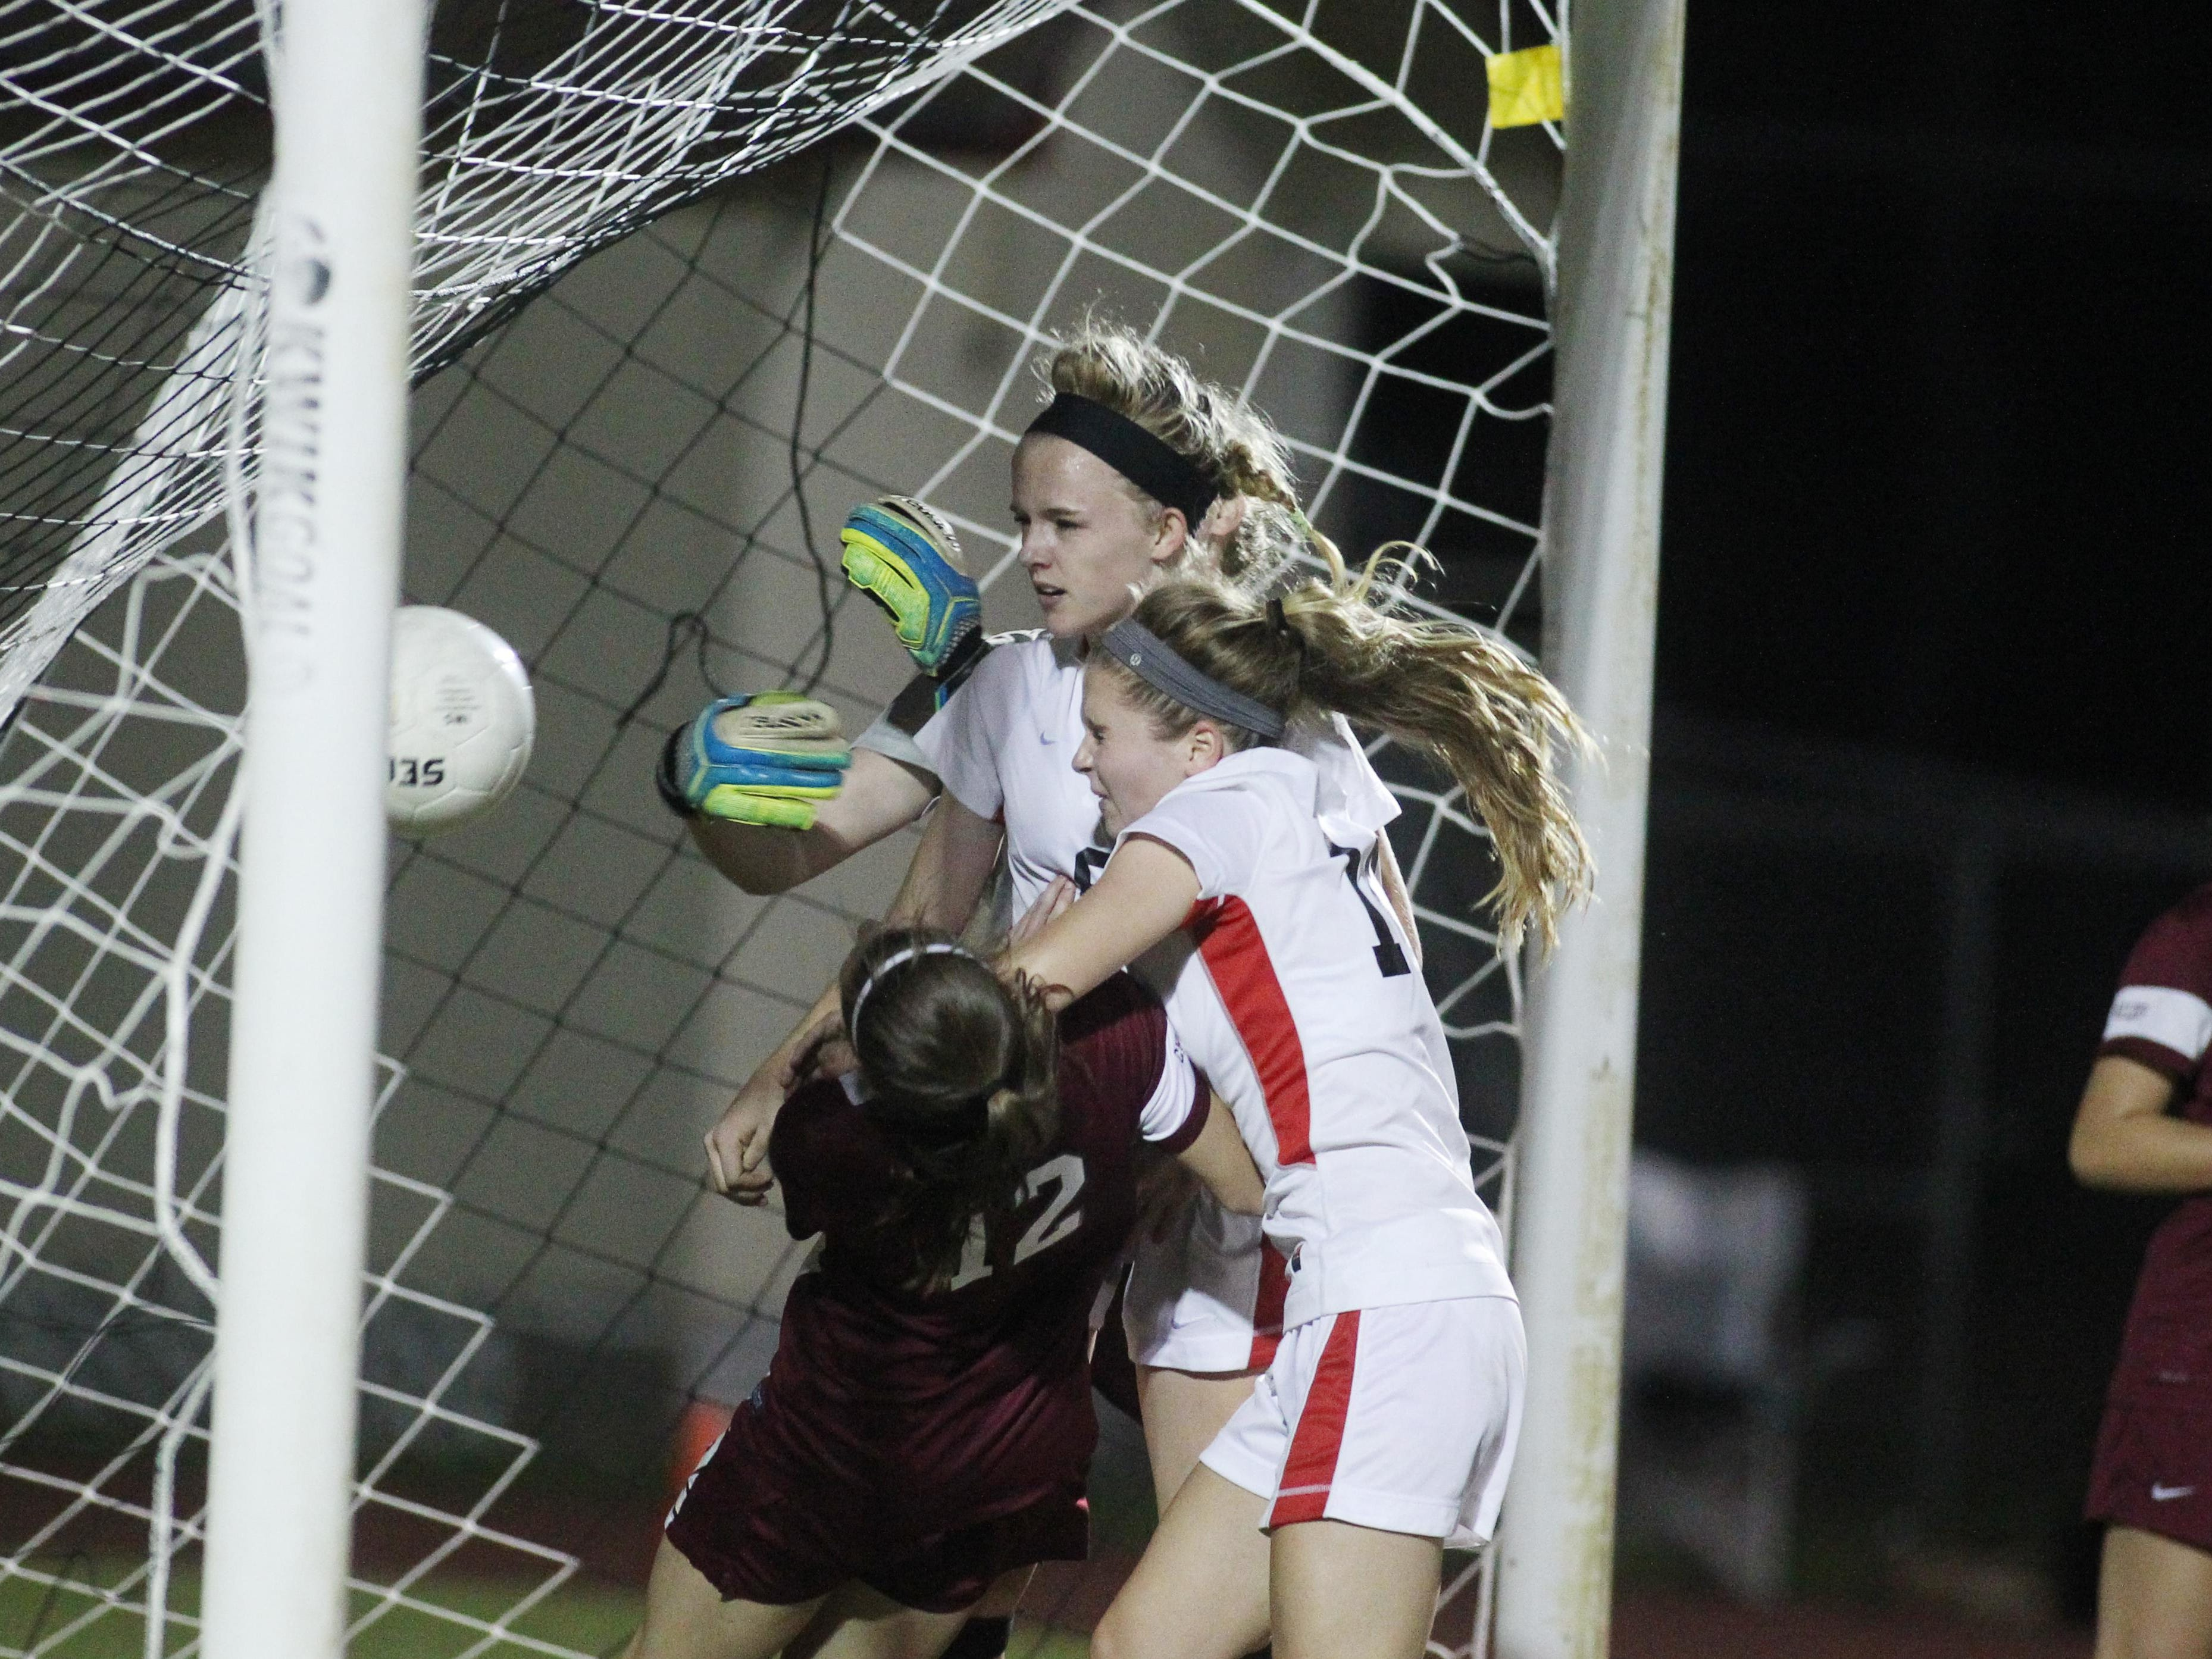 Leon sophomore Maddie Powell scored a goal off a header during a 3-0 win over Chiles on Tuesday night.